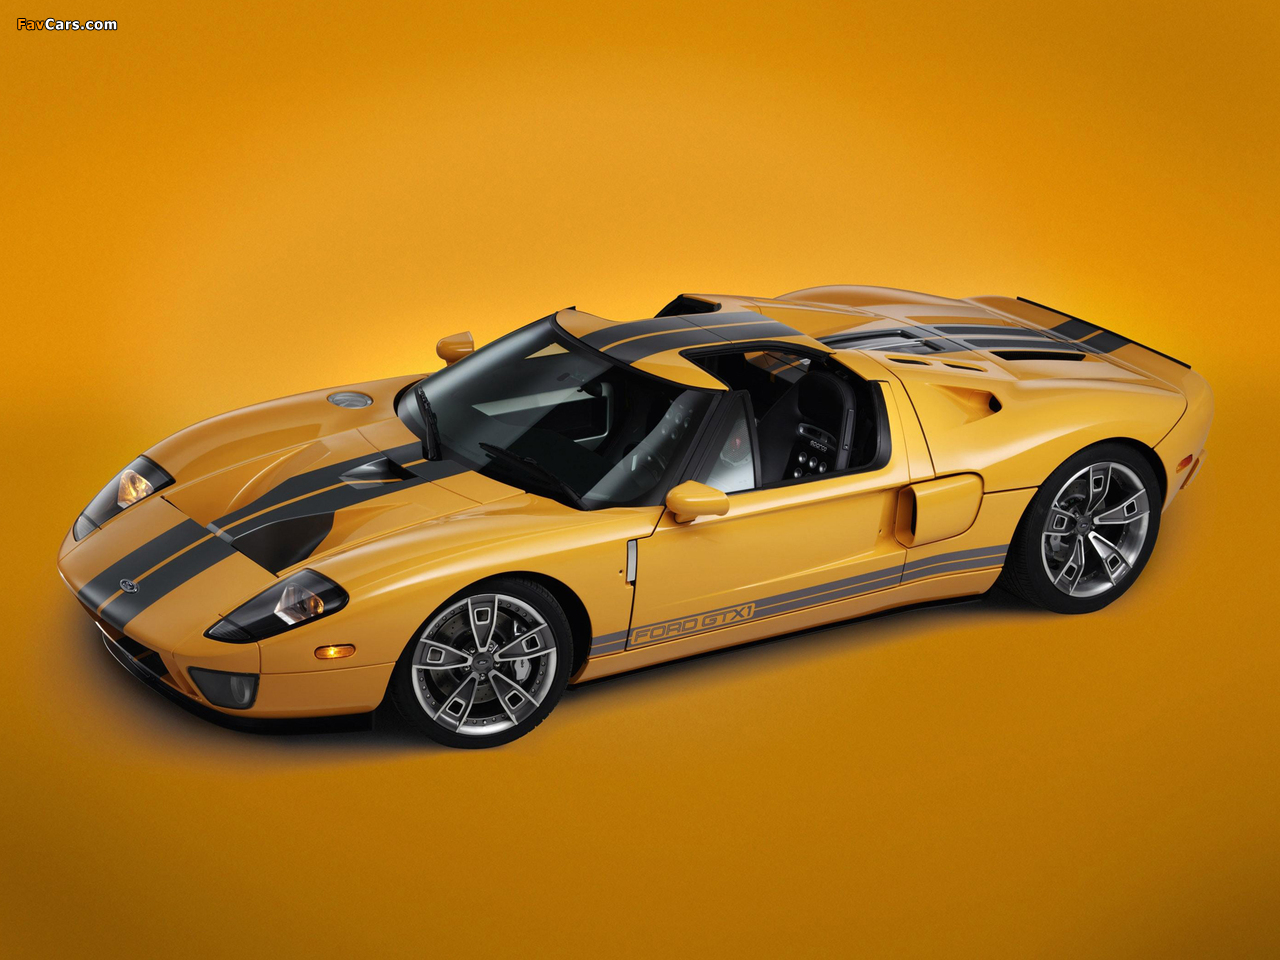 Ford GTX1 Concept 2005 wallpapers (1280 x 960)